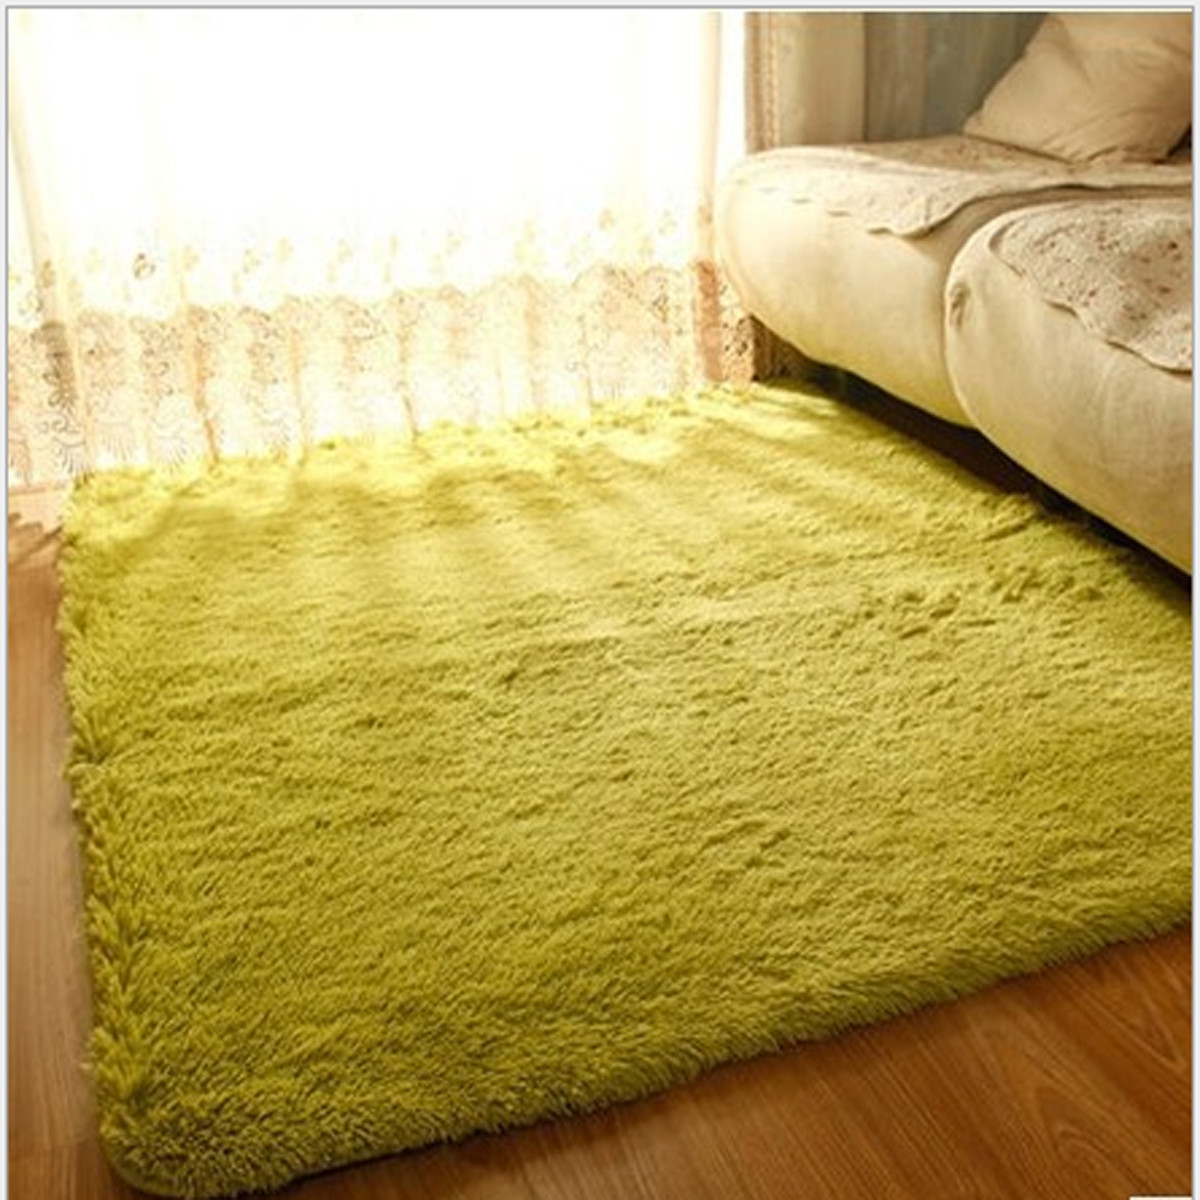 90x160cm Bedroom Fluffy Floor Carpet Mat Soft Shaggy